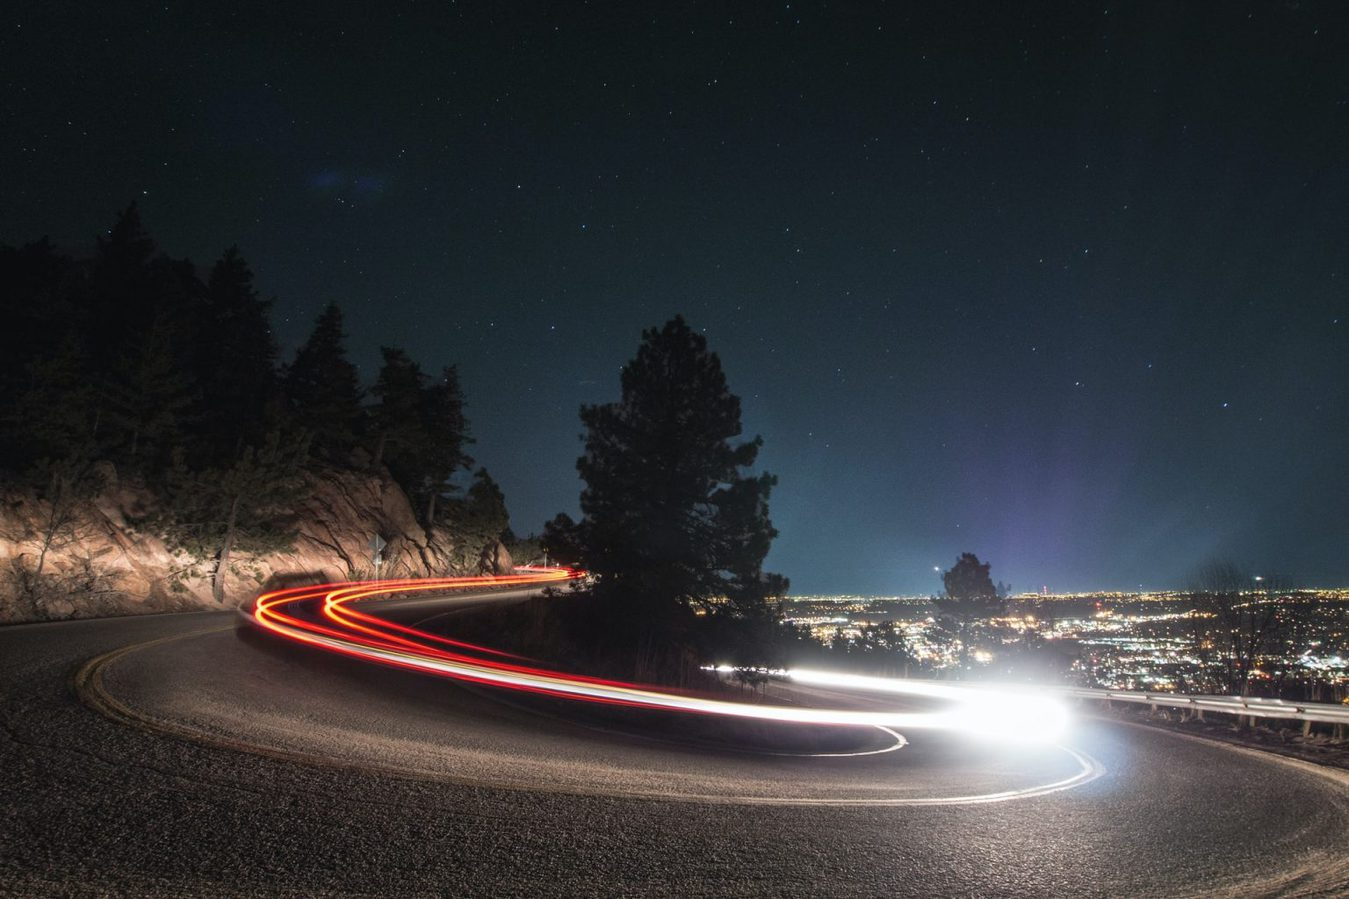 Long exposure showing car lights on the road